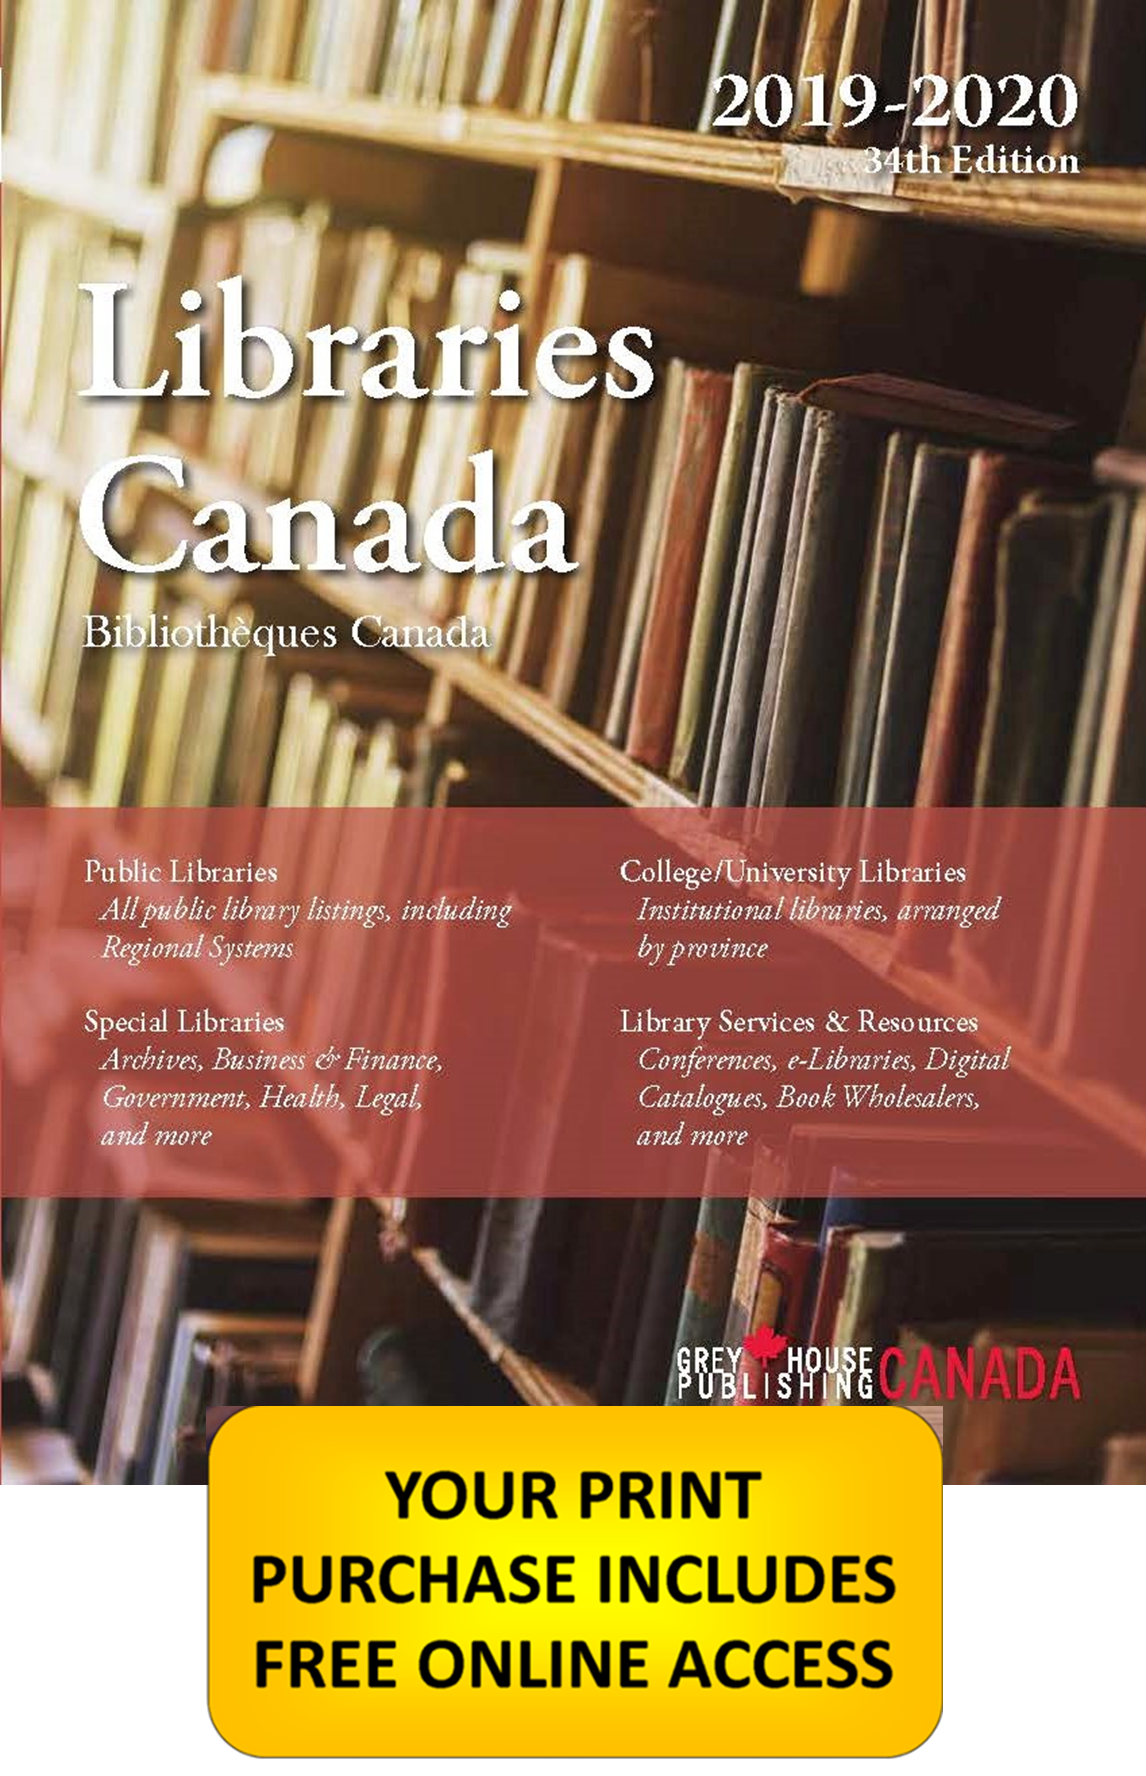 Libraries Canada